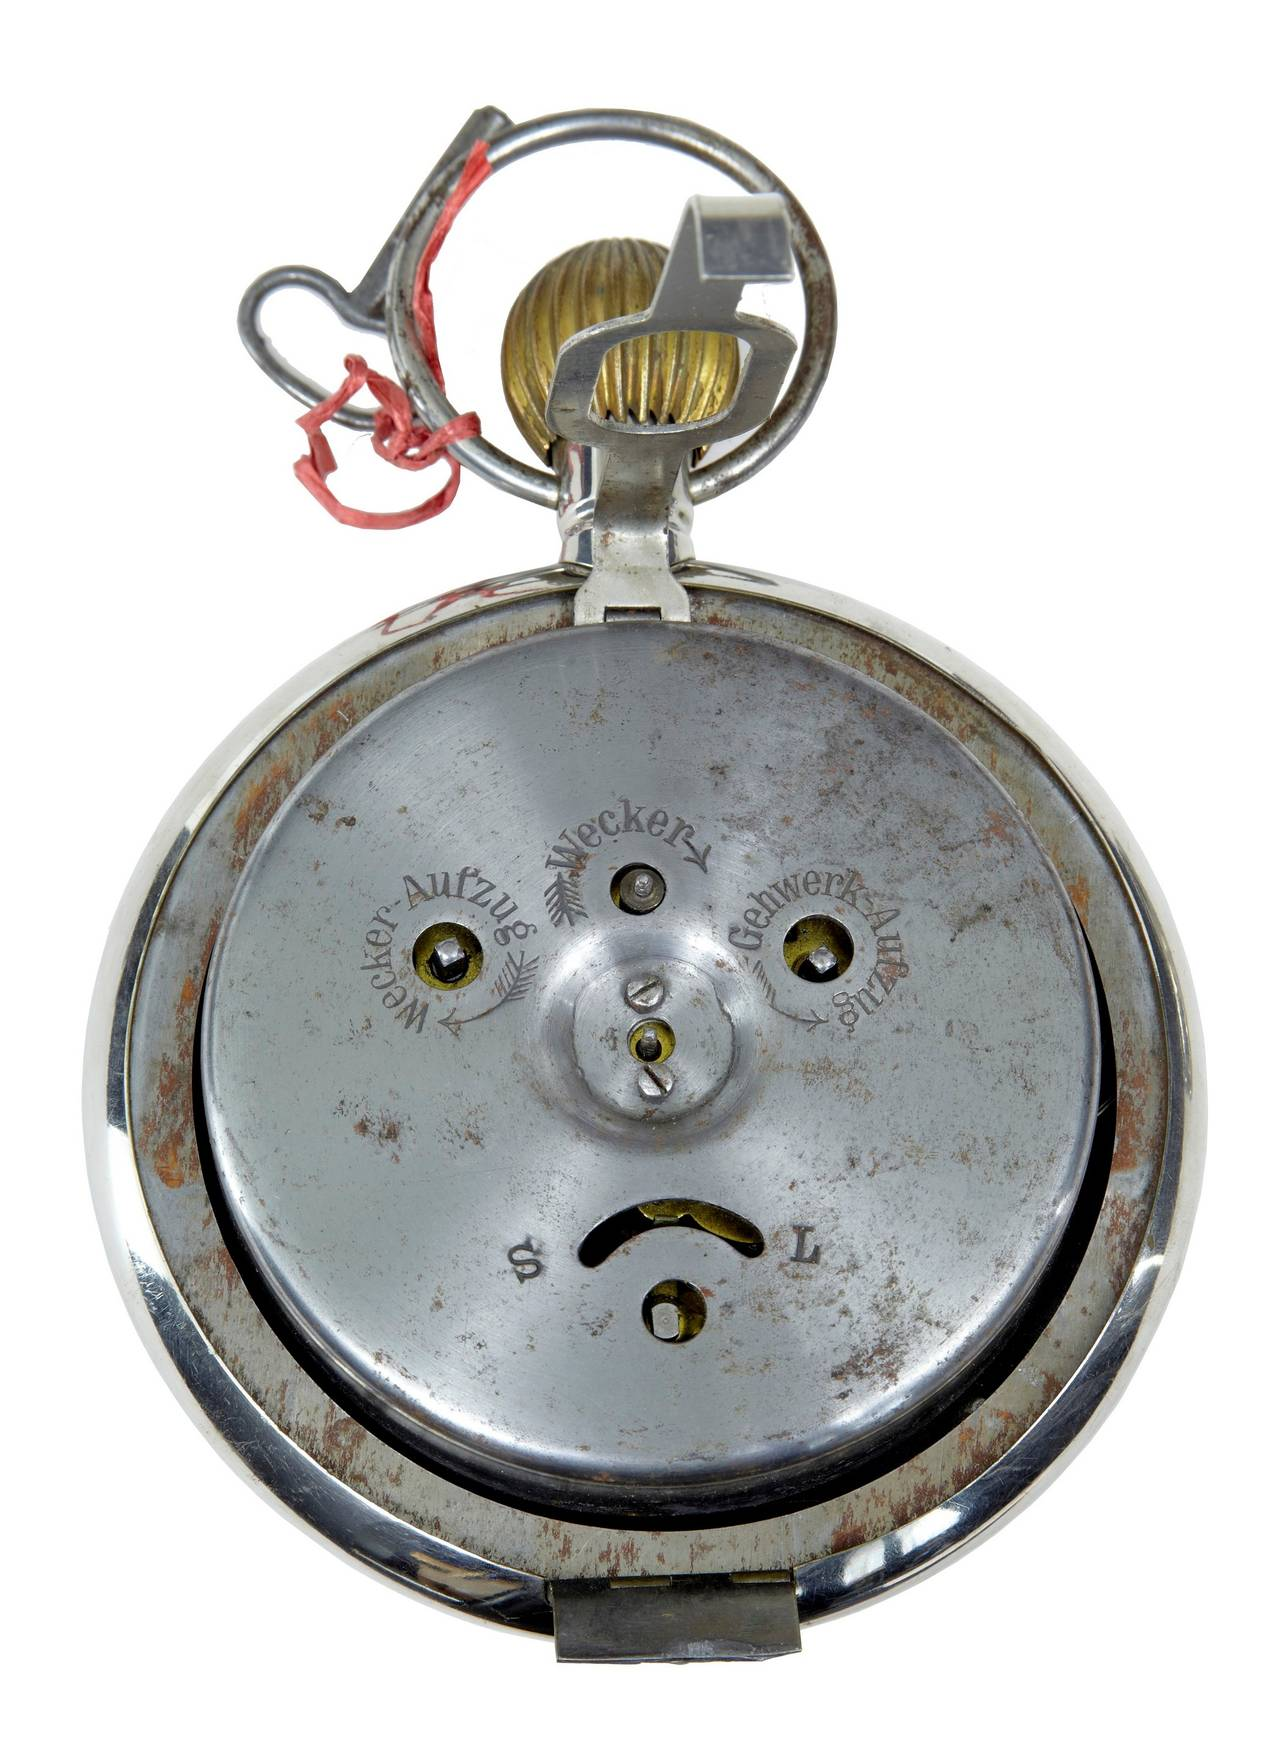 Early 20th century German clock in the form of a pocket watch D.R.G.M  Here we have a German patented oversized pocket watch or clock, circa 1910.  Marked on the face with D.R.G.M and D.R.P. Also bares the RSM rose logo which dates this to